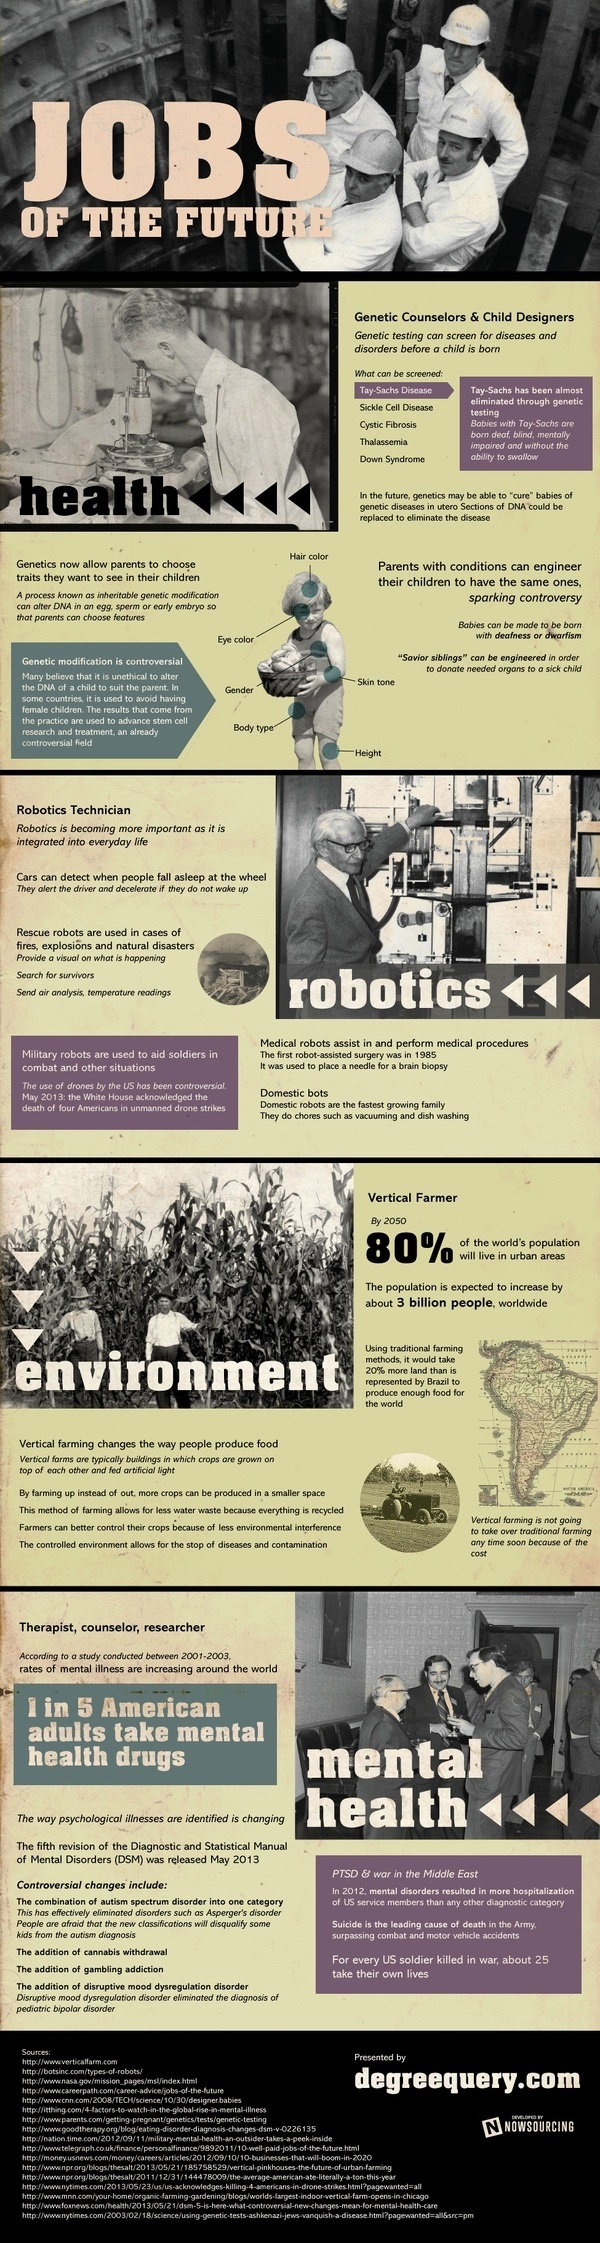 Jobs of the Future #career #job #health #environment #jobs #robotics #profession #occupation #mental #degrees #future